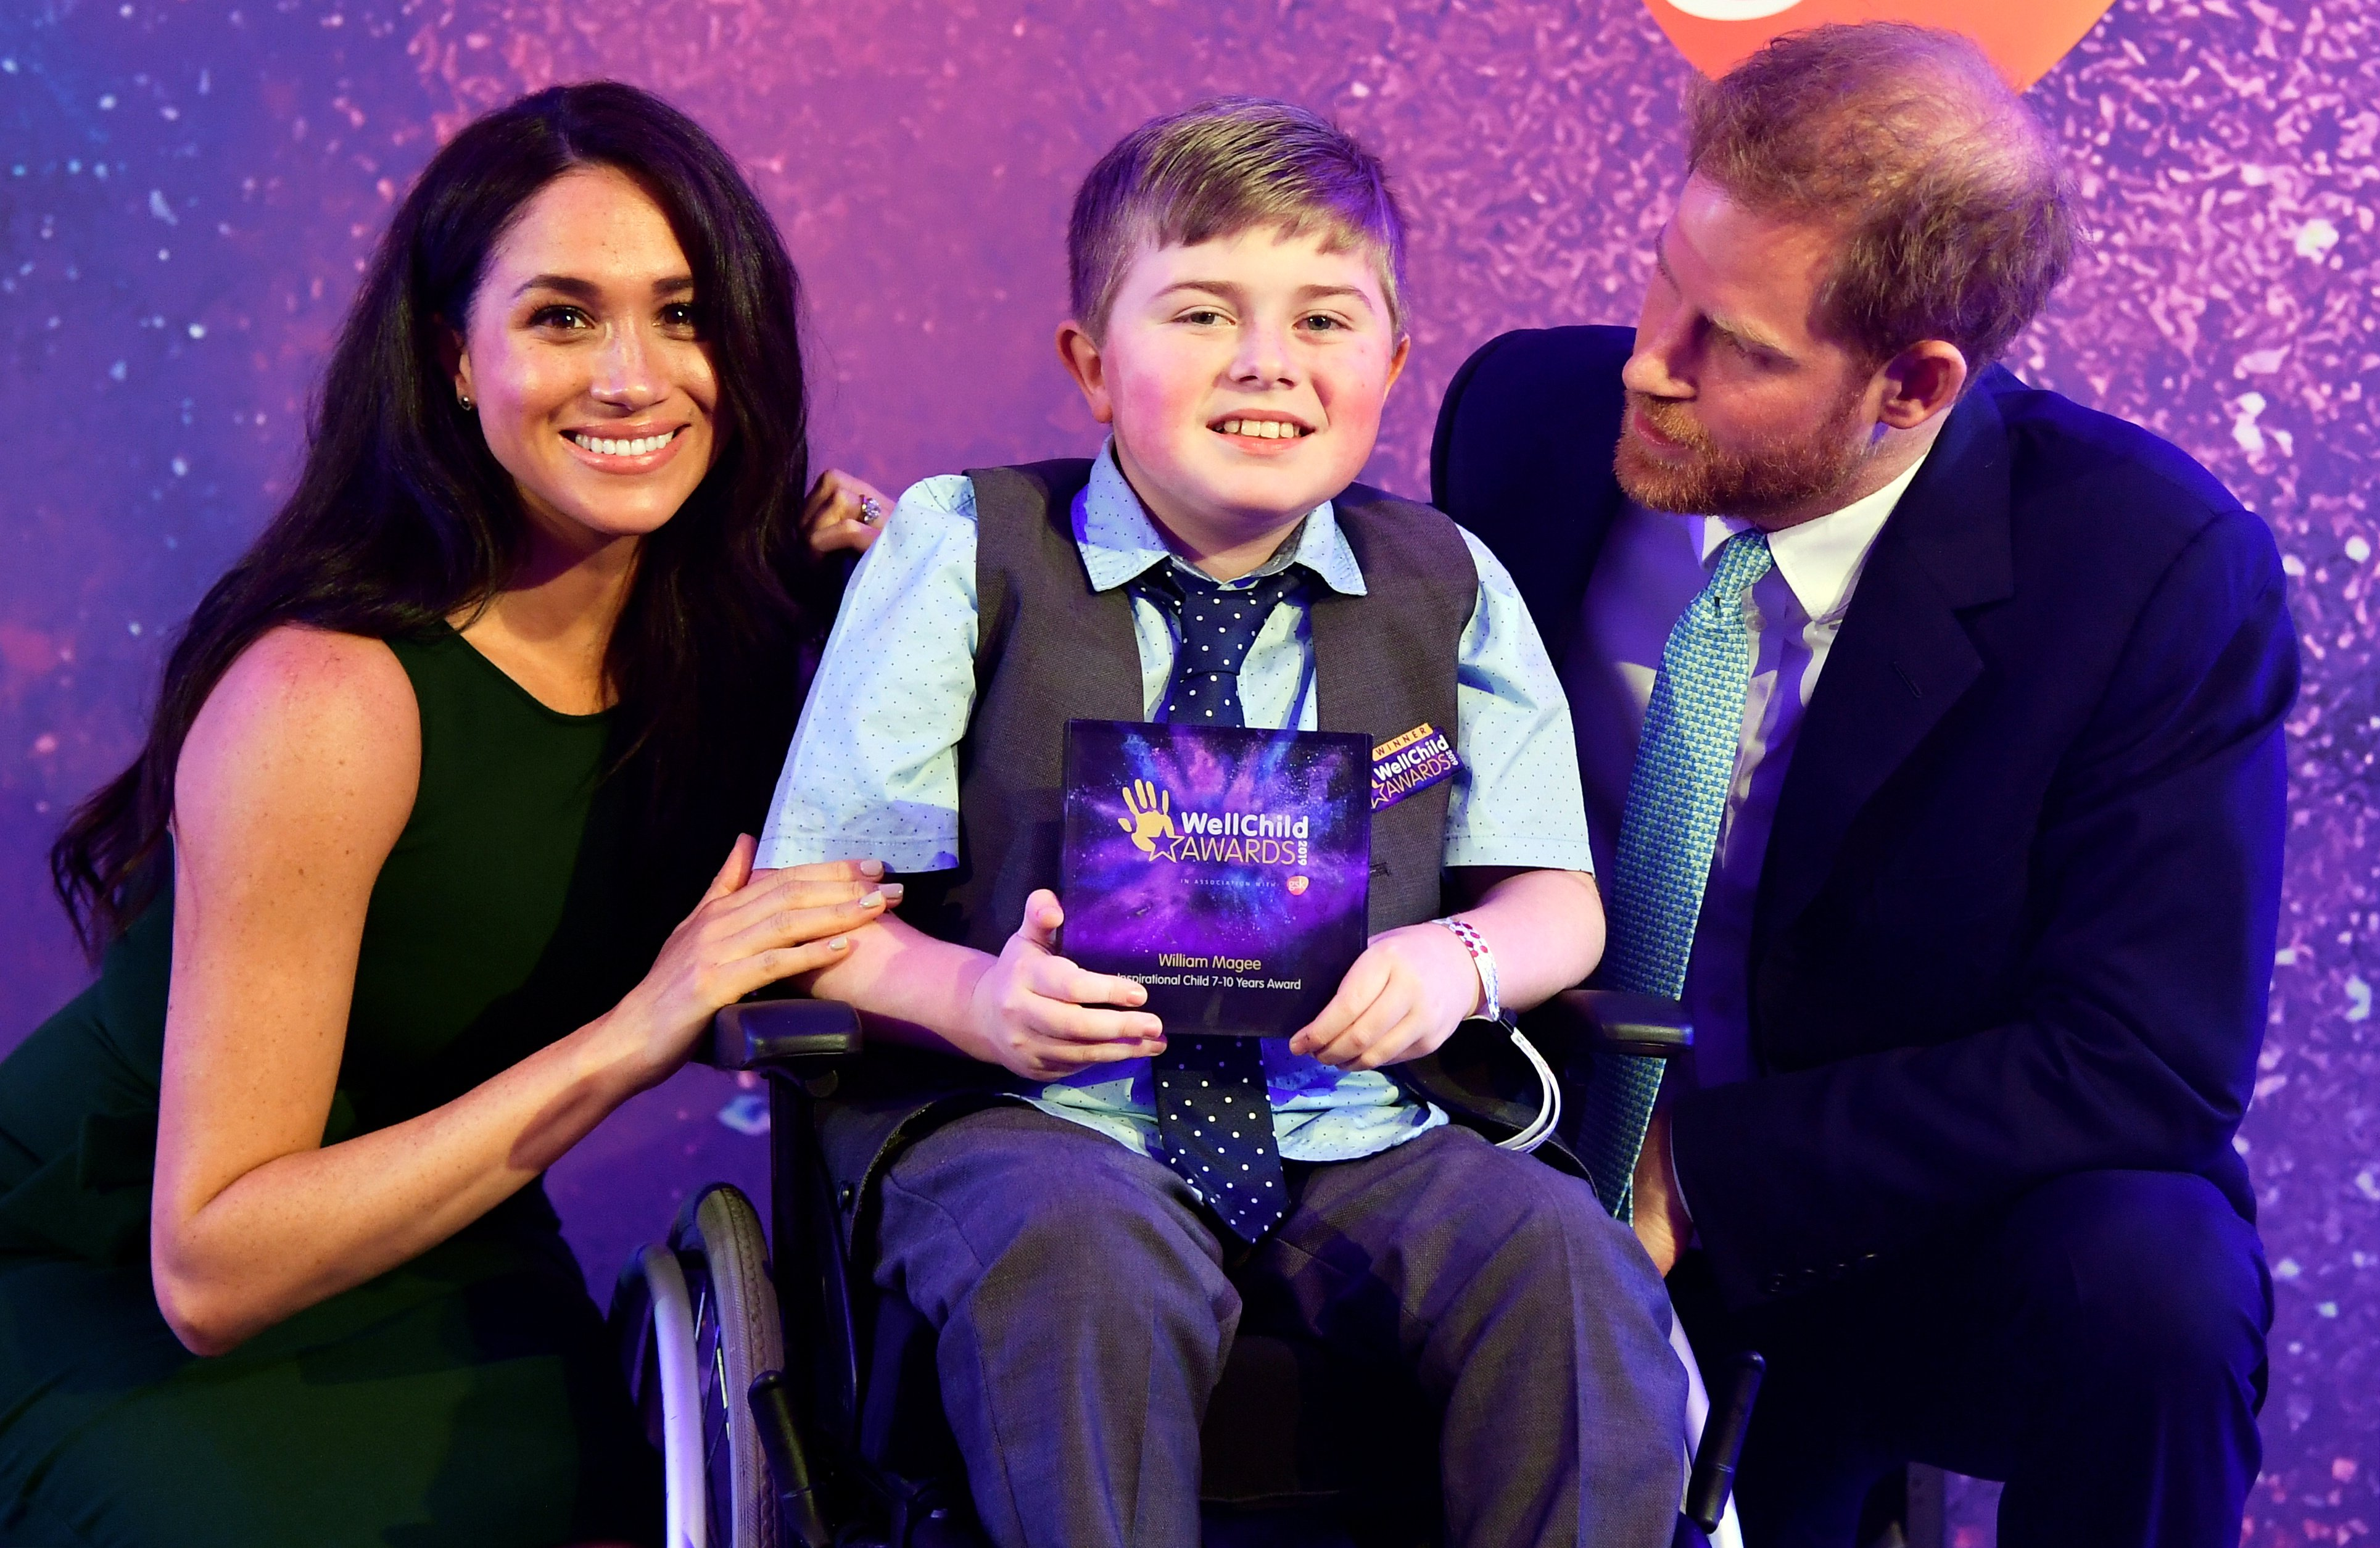 Prince Harry, Duke of Sussex and Meghan, Duchess of Sussex pose for a photograph with award winner William Magee during the WellChild Awards at Royal Lancaster Hotel on October 15, 2019 in London, England. (Photo by Toby Melville - WPA Pool/Getty Images)